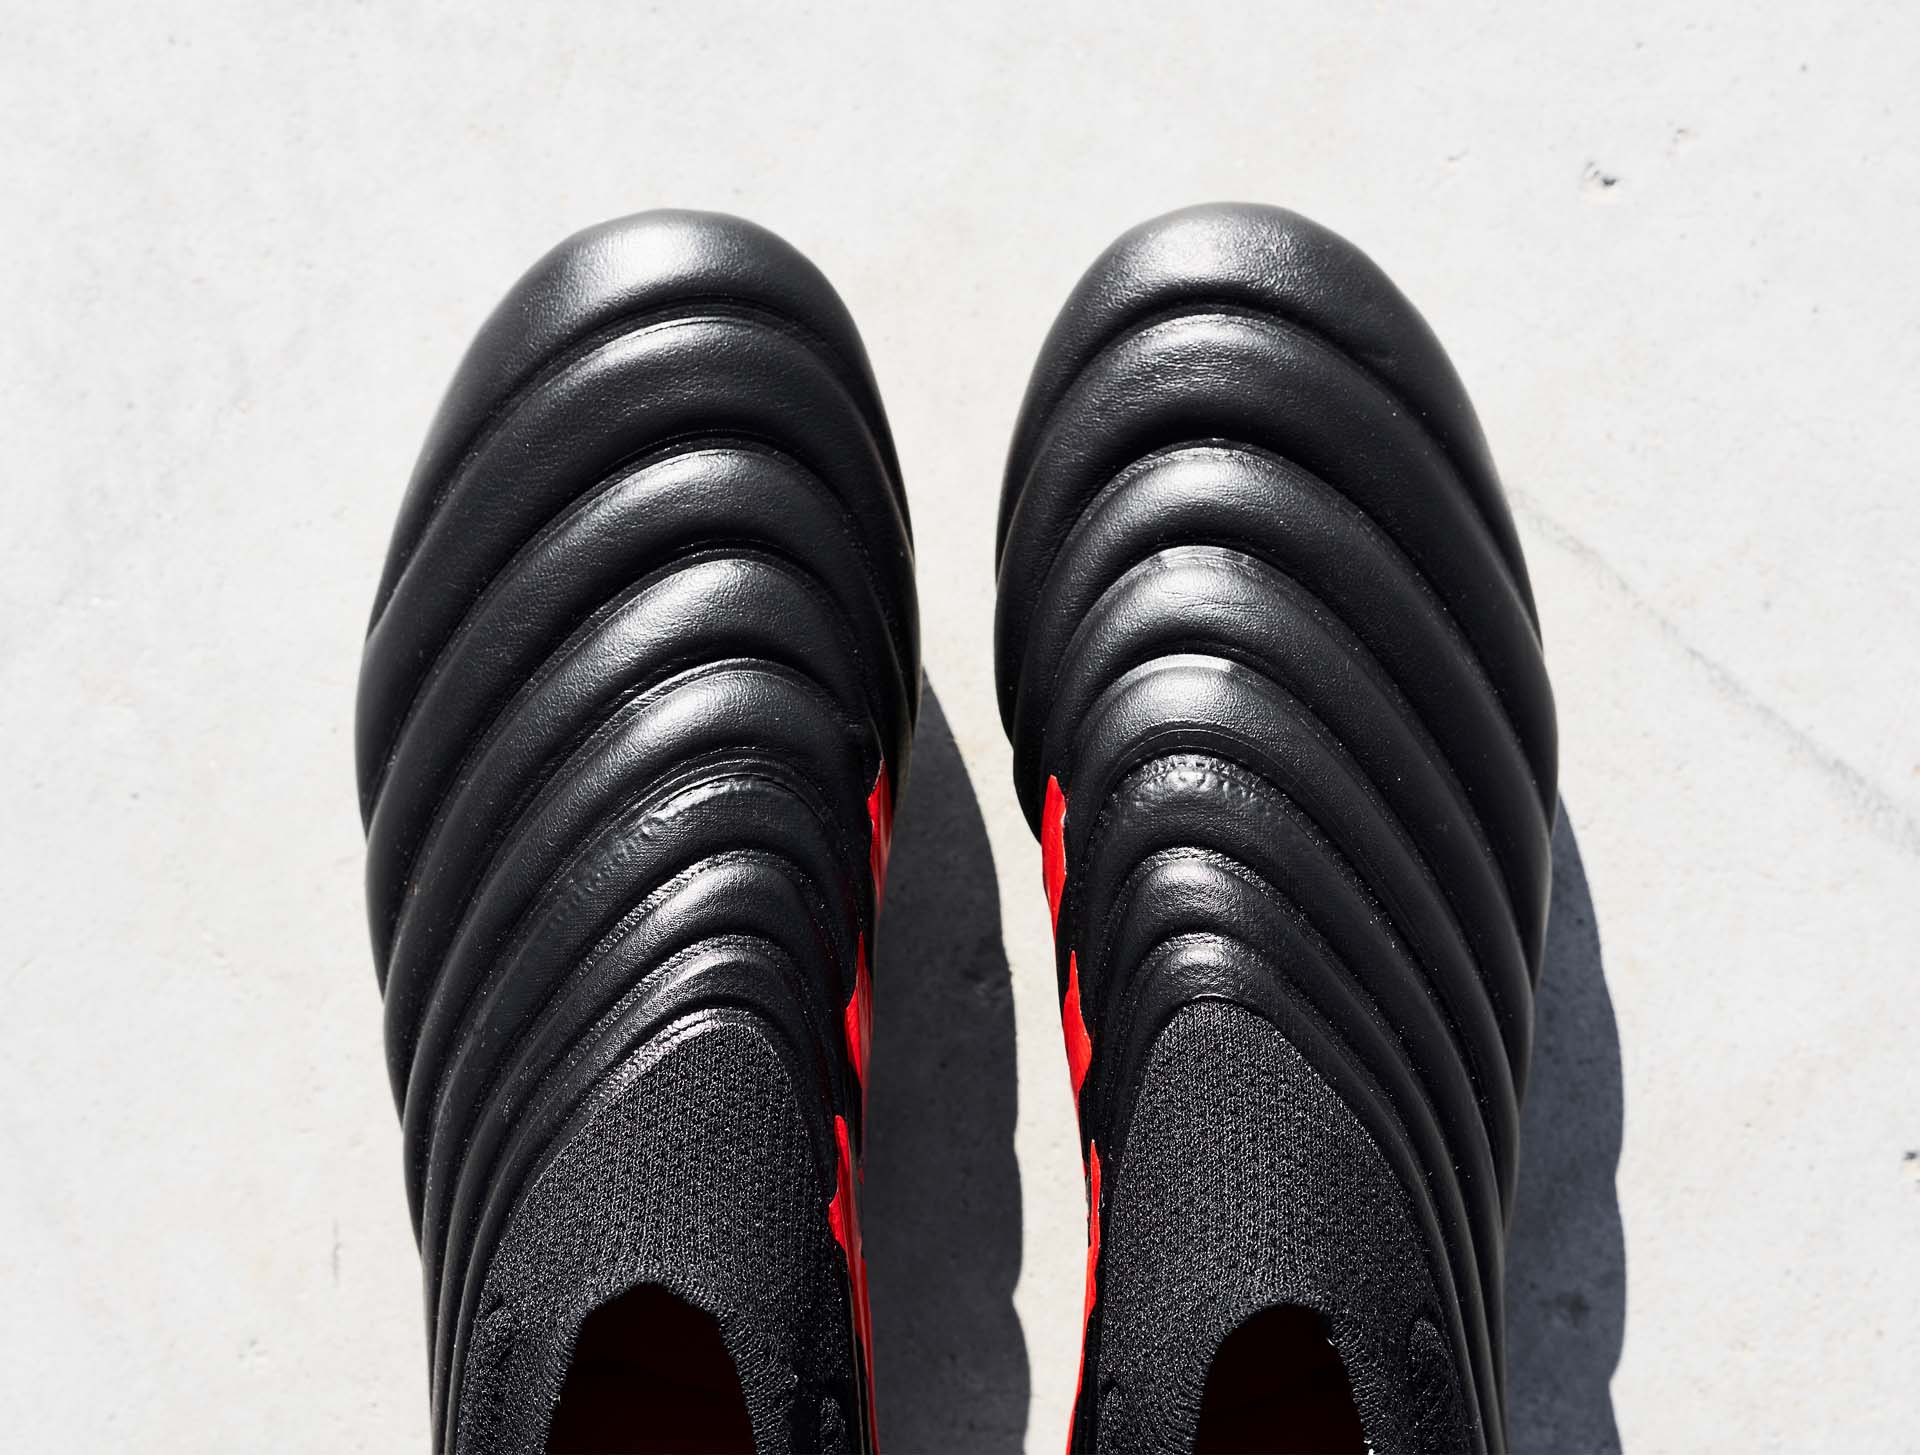 1-adidas-copa-19-302-redirect-pack.jpg